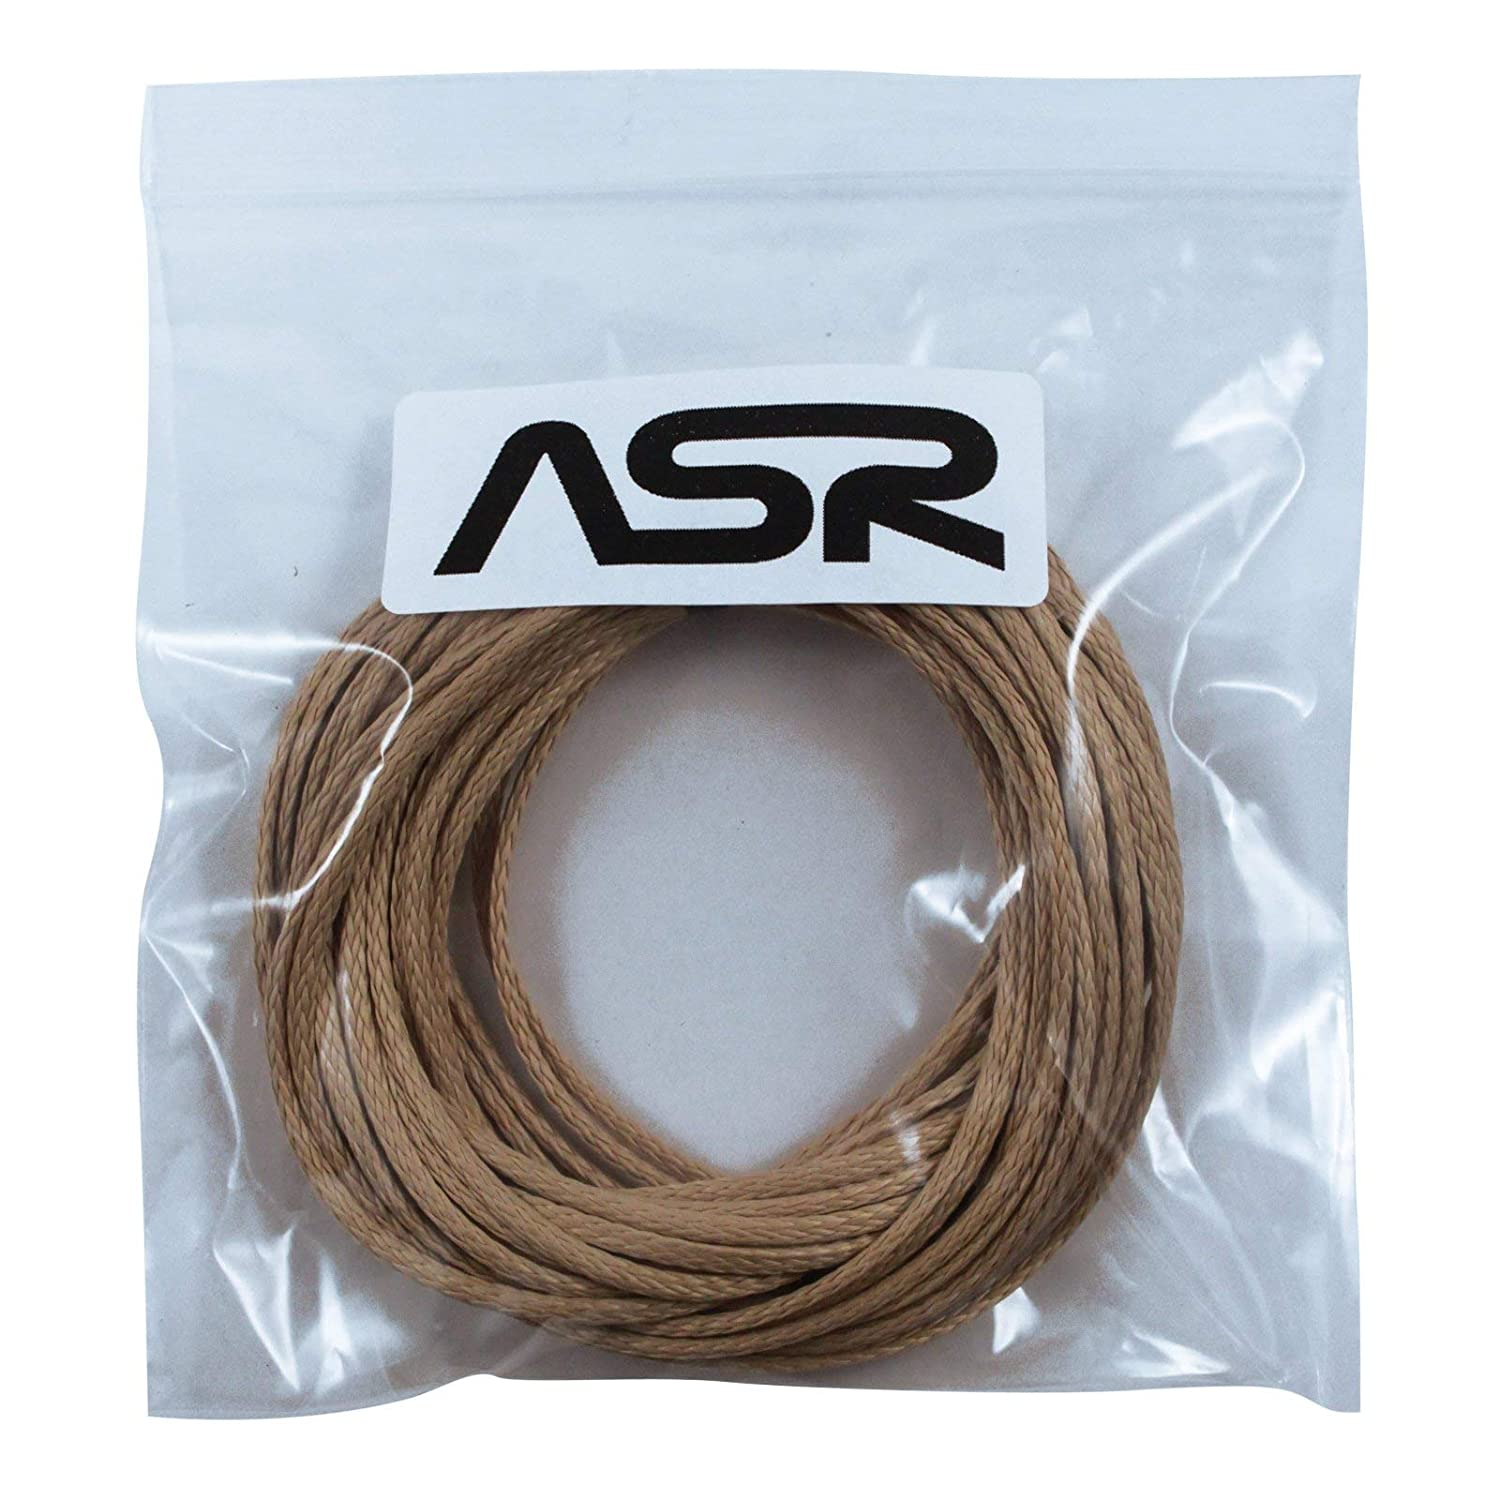 Shomer-Tec Ultimate Nine-Fifty Technora Composite Survival Cord Rope 40 ft, 950lbs Breaking Strength ASR Tactical 950-40